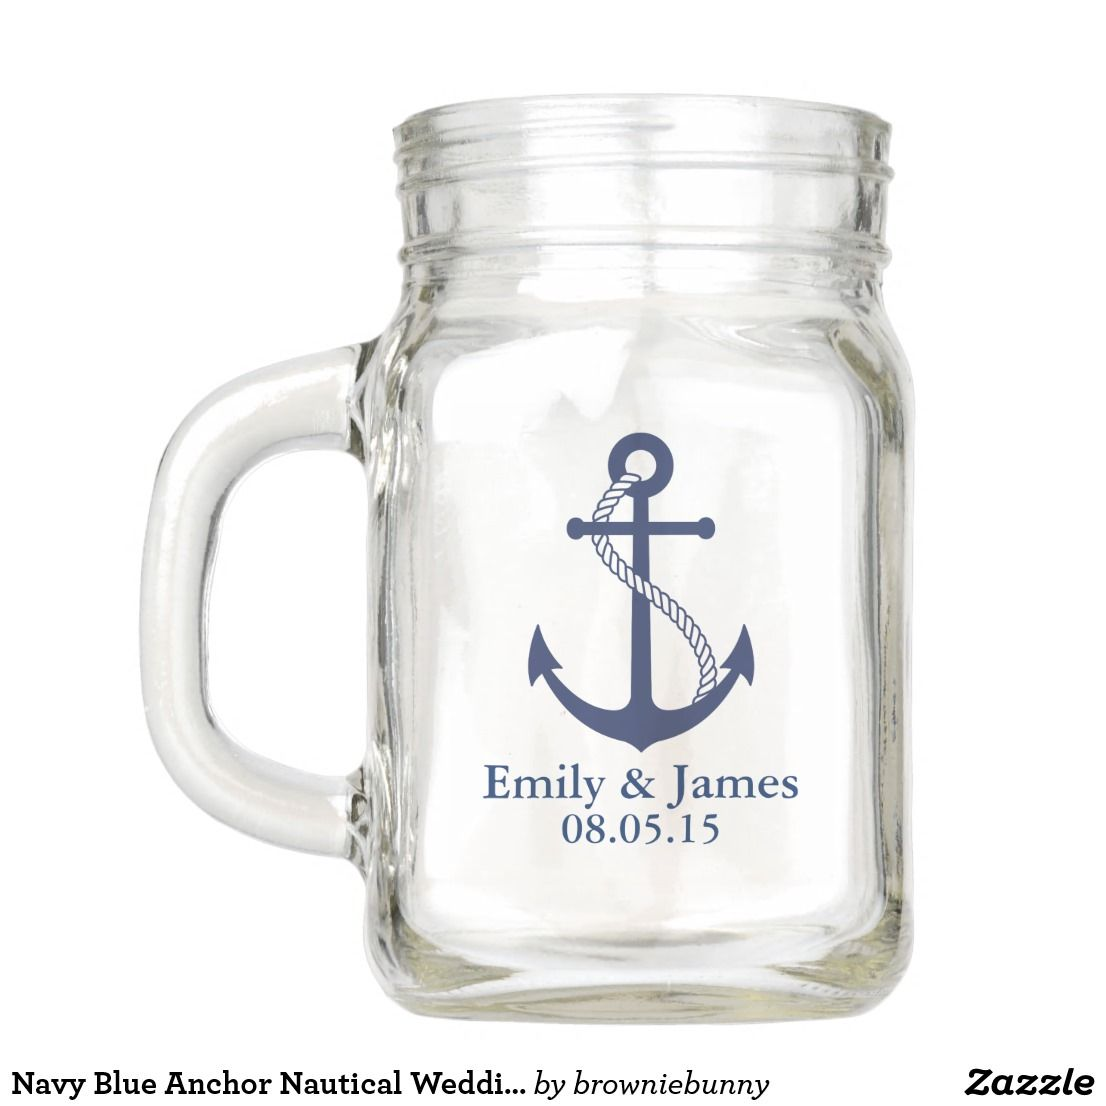 Navy Blue Anchor Nautical Wedding Favor Mason Jar | Nautical wedding ...